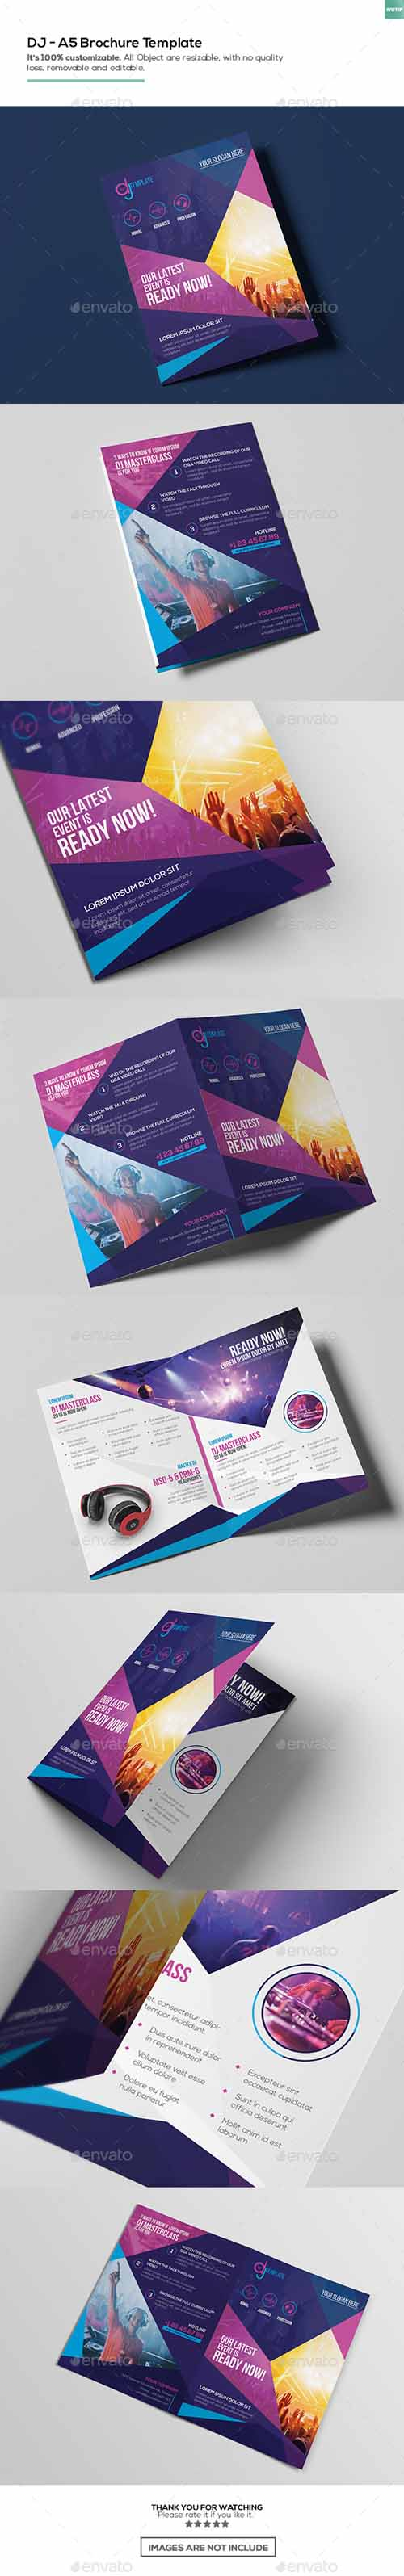 DJ/ A5 Brochure Template 15993857